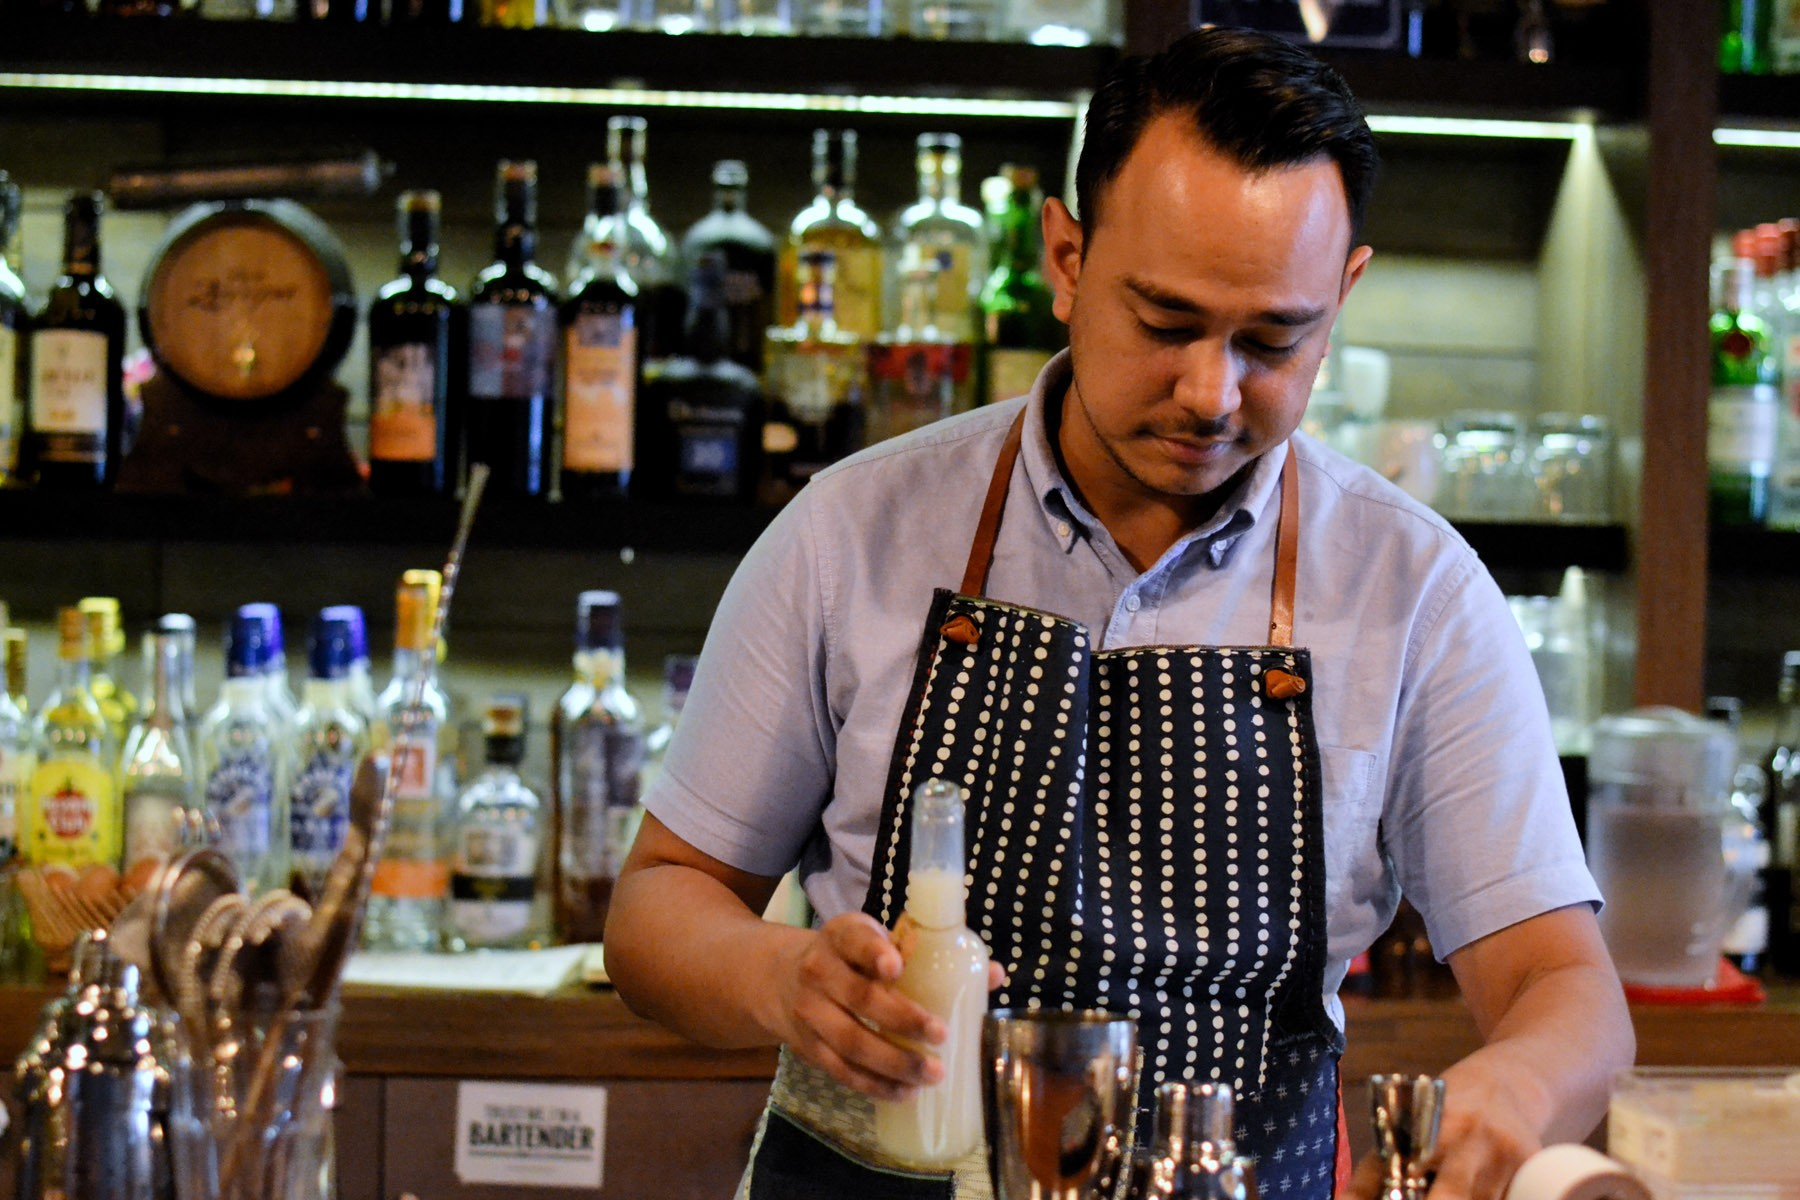 Sugarhall's Stuart Danker has worked in the hospitality industry for nearly a decade.